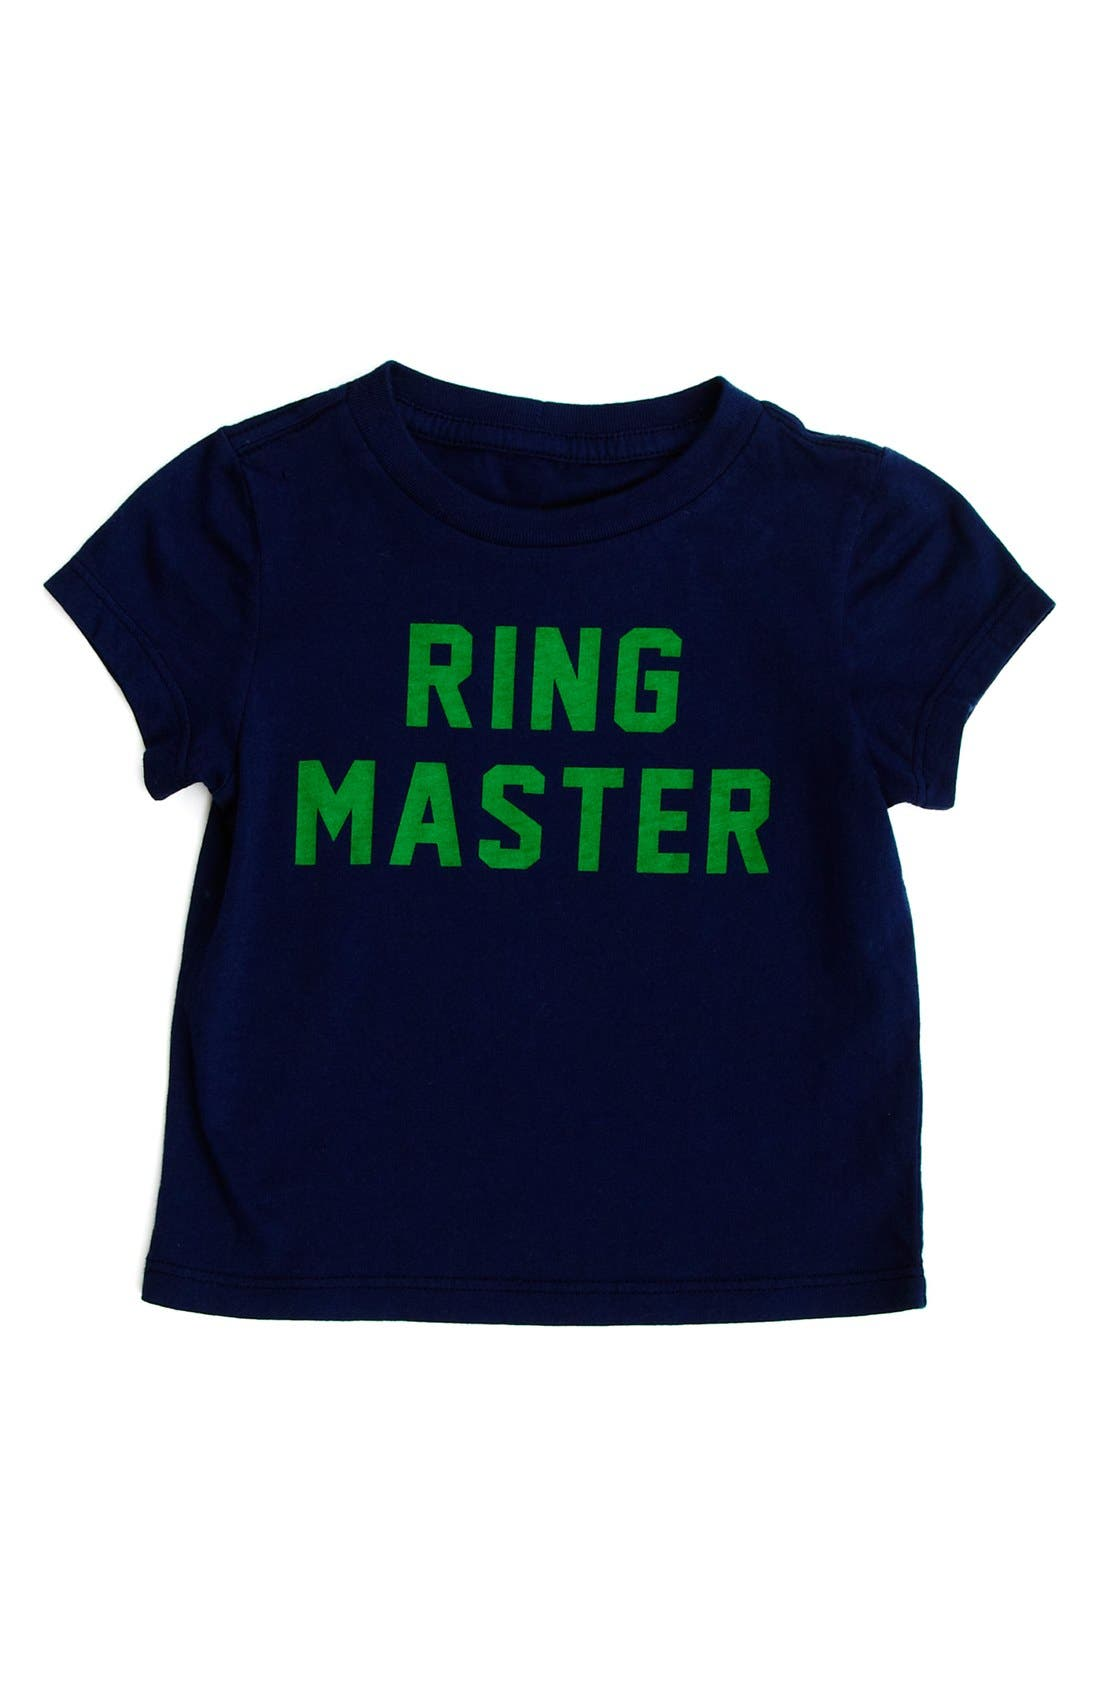 Main Image - Peek 'Ring Master' T-Shirt (Baby Girls)